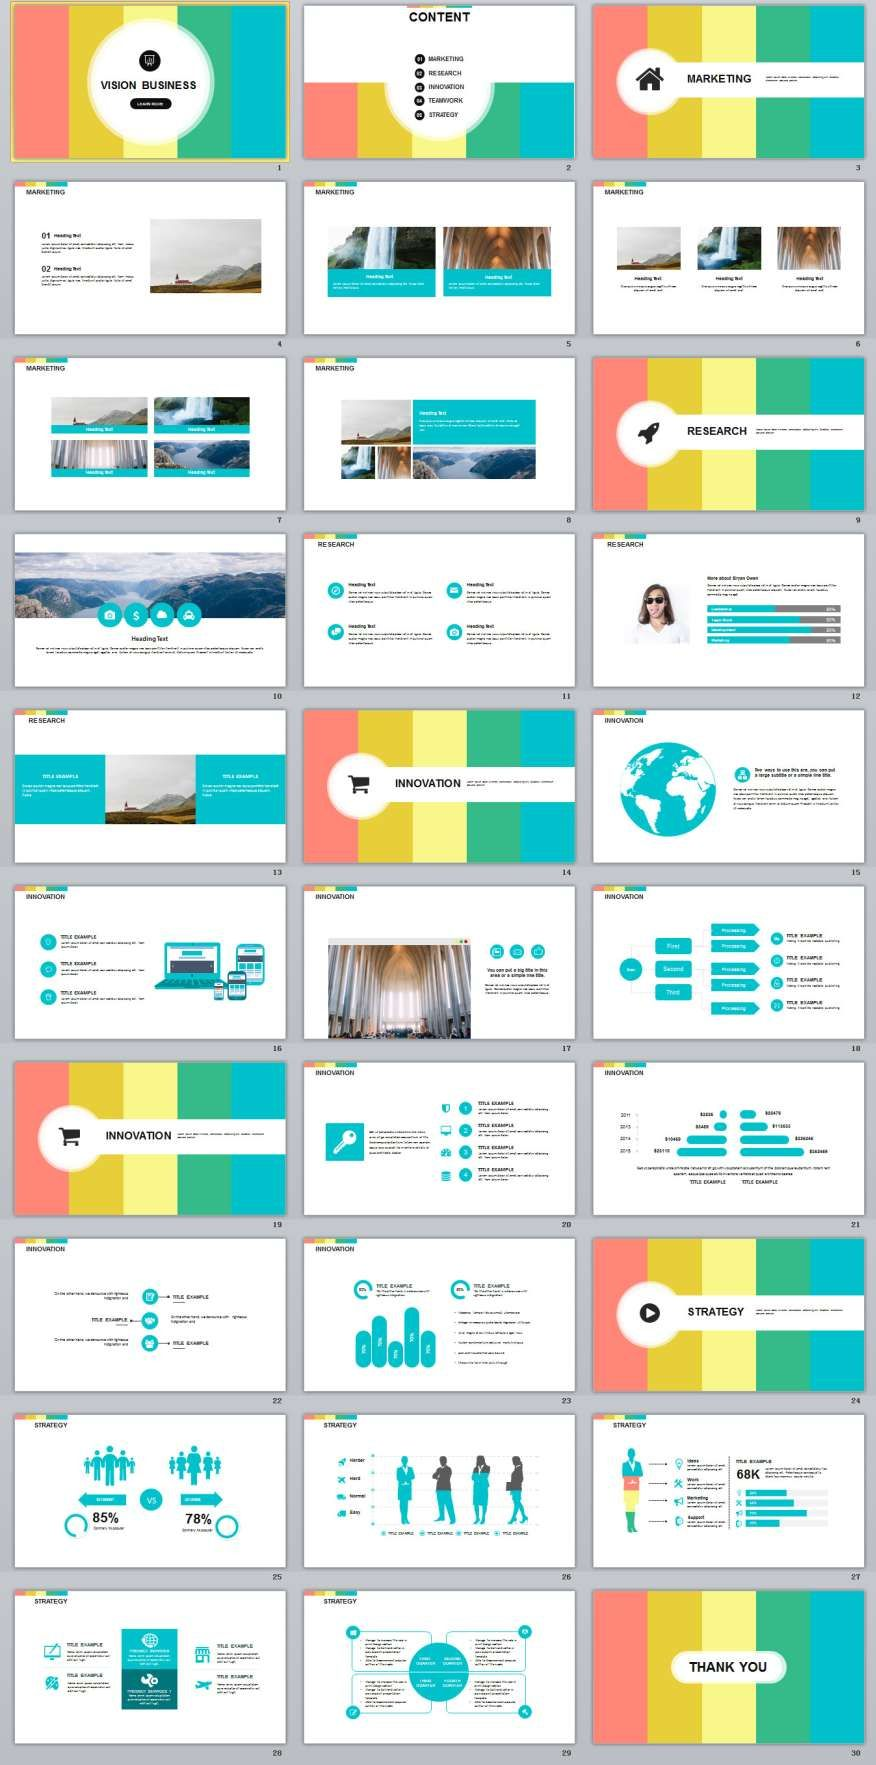 30 business vision design powerpoint templates template business 30 business vision design powerpoint templates the highest quality powerpoint templates and keynote templates download toneelgroepblik Images